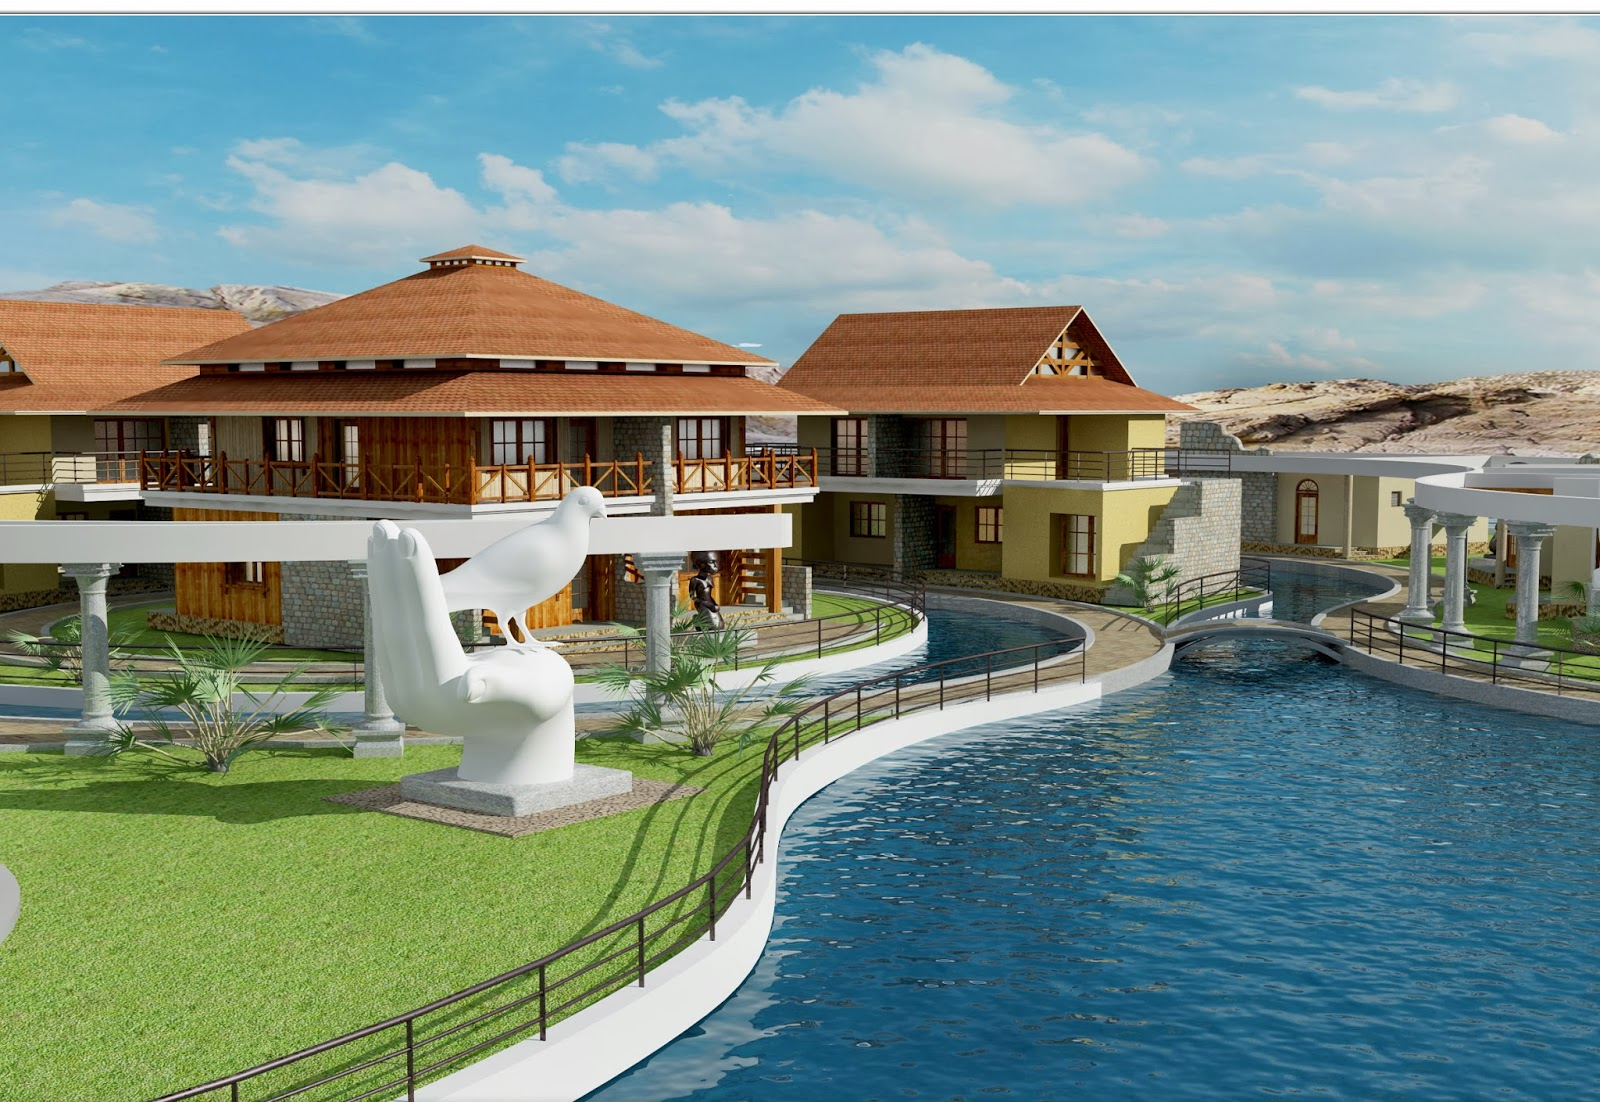 Mps latest project of mps green ffort resort at jhargram west bengal